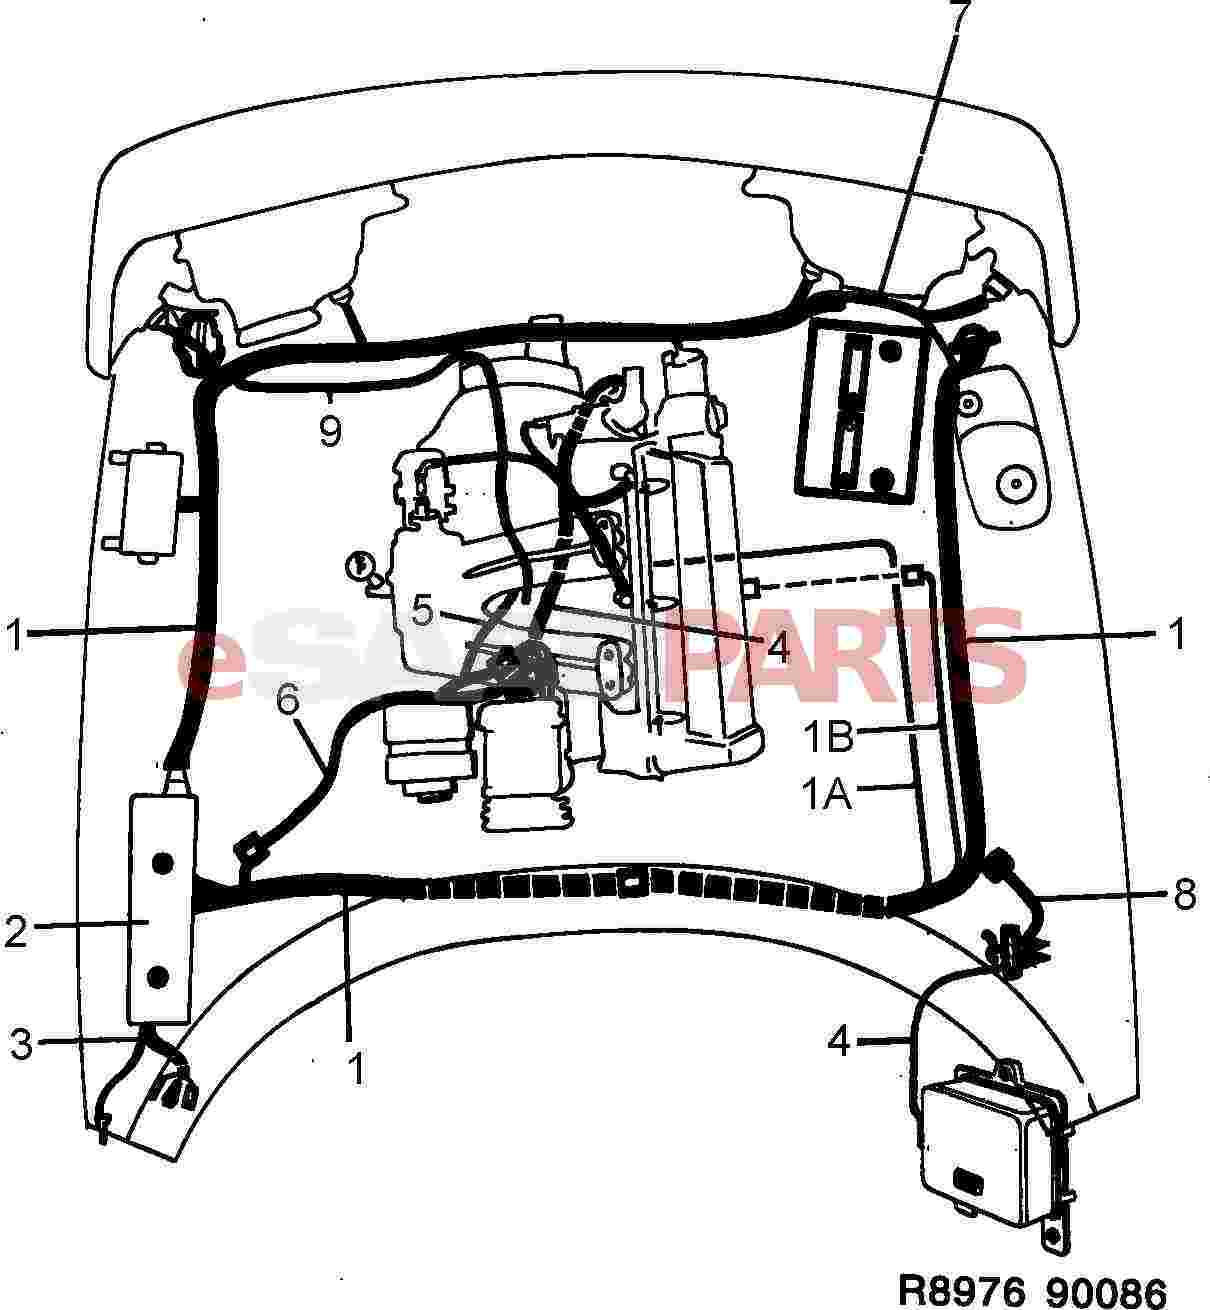 saab wiring harness 1 9 artatec automobile de \u2022esaabparts com saab 900 u003e electrical parts u003e wiring harness rh esaabparts com saab 9 5 wiring harness saab 9 3 wiring harness